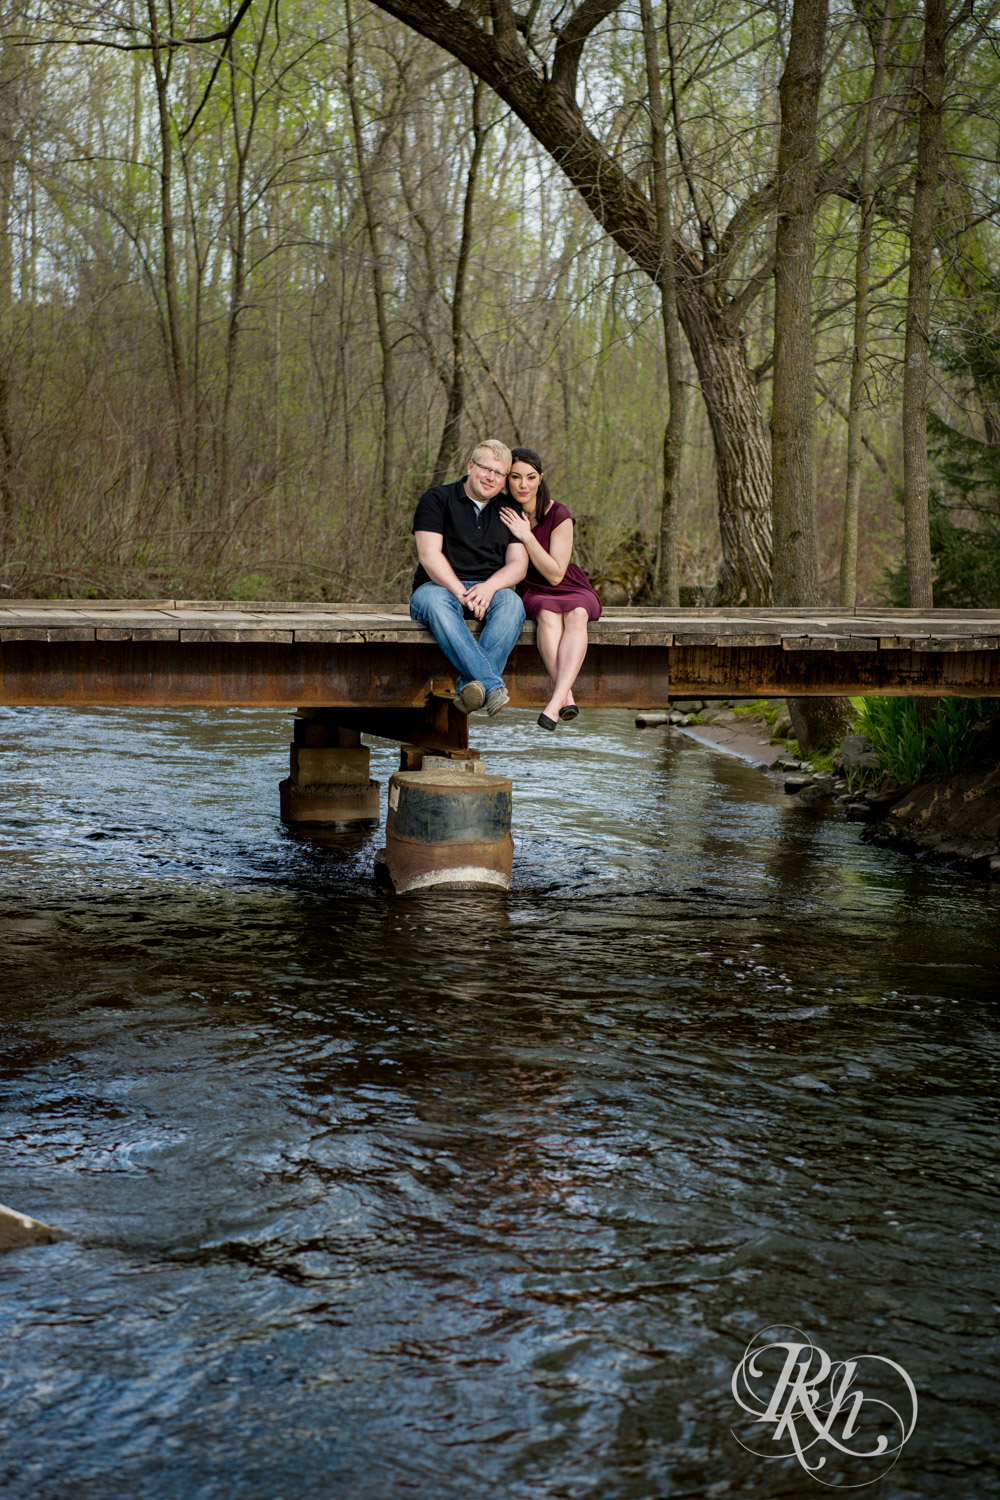 Chelsey & Erik - Minnesota Engagement Photography - Creekside Farm and Events - Rush City - RKH Images  (7 of 18).jpg